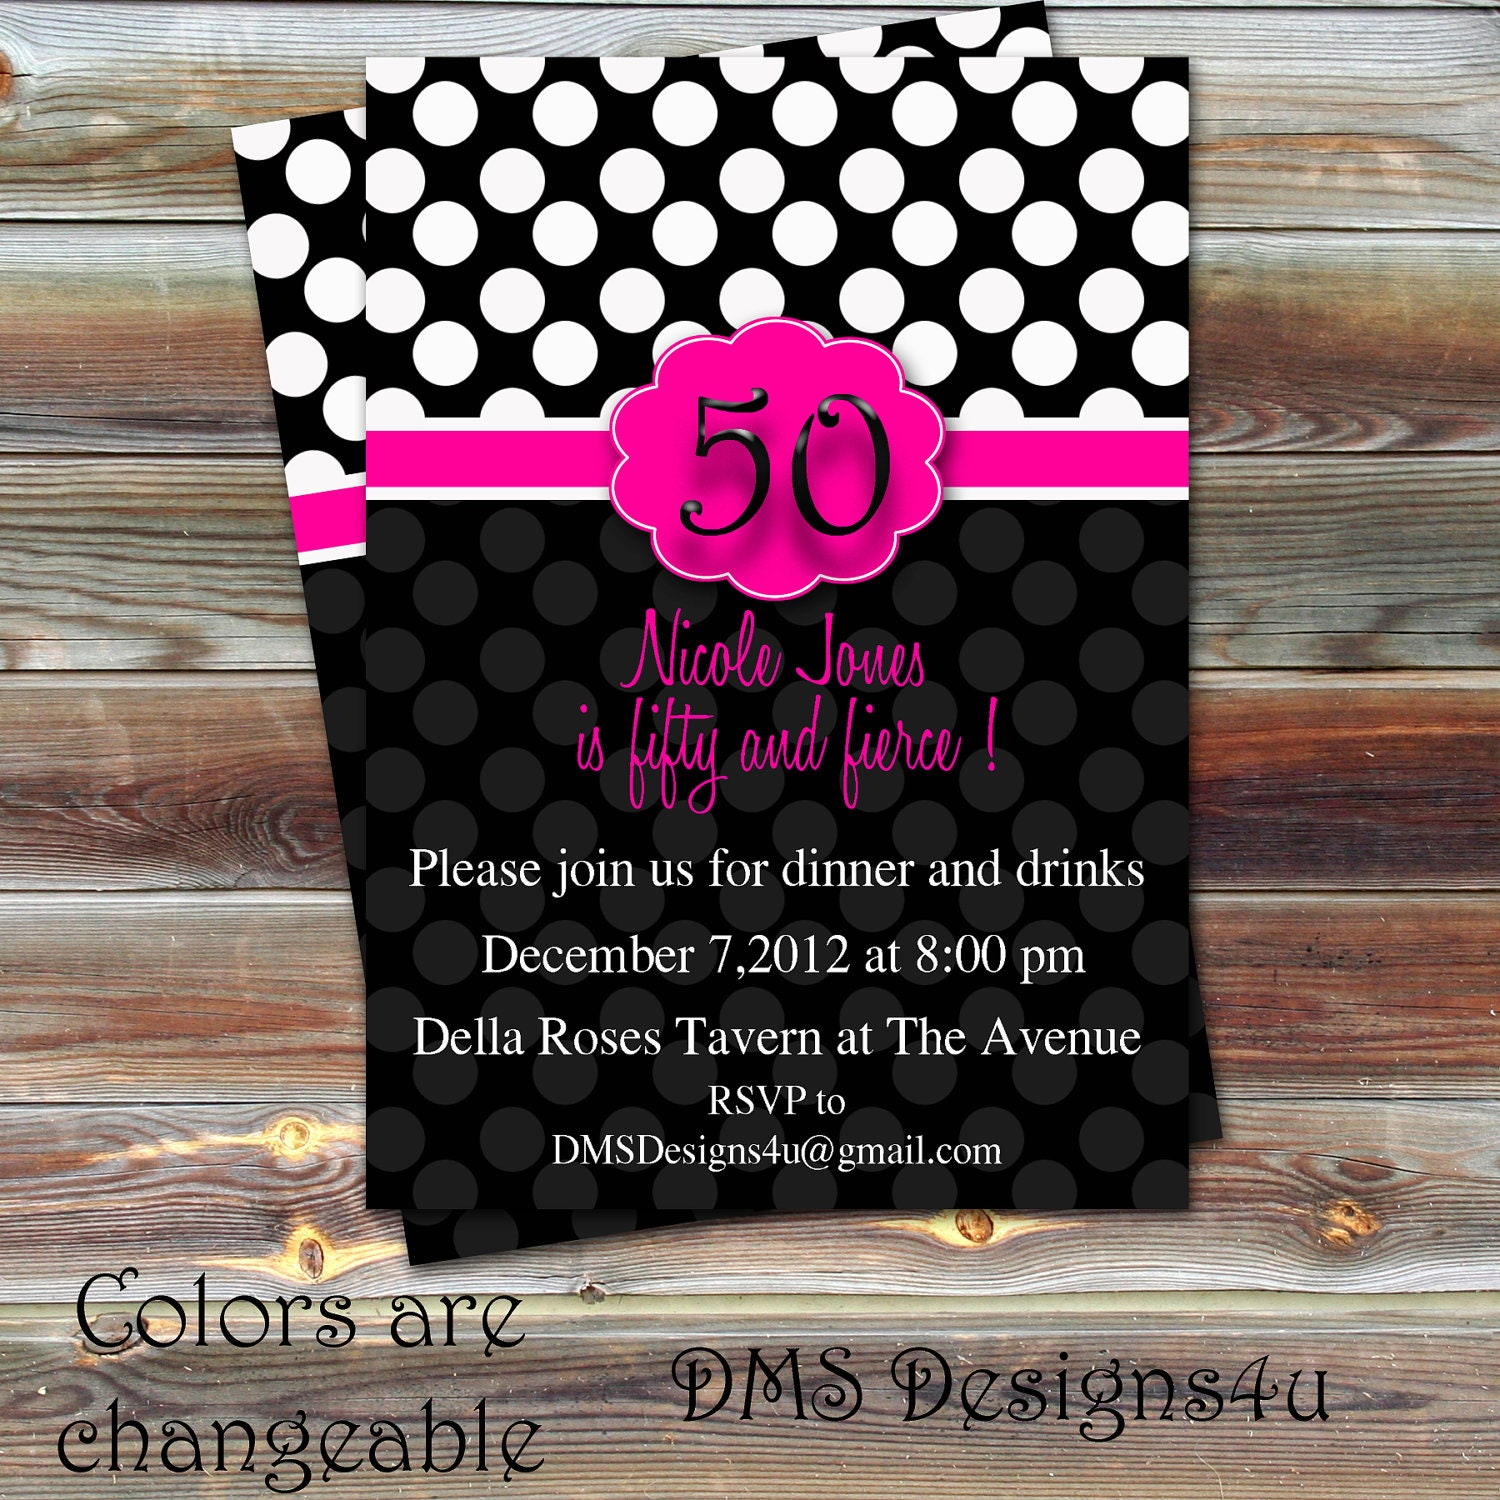 21St Birthday Invitations Male was great invitation example